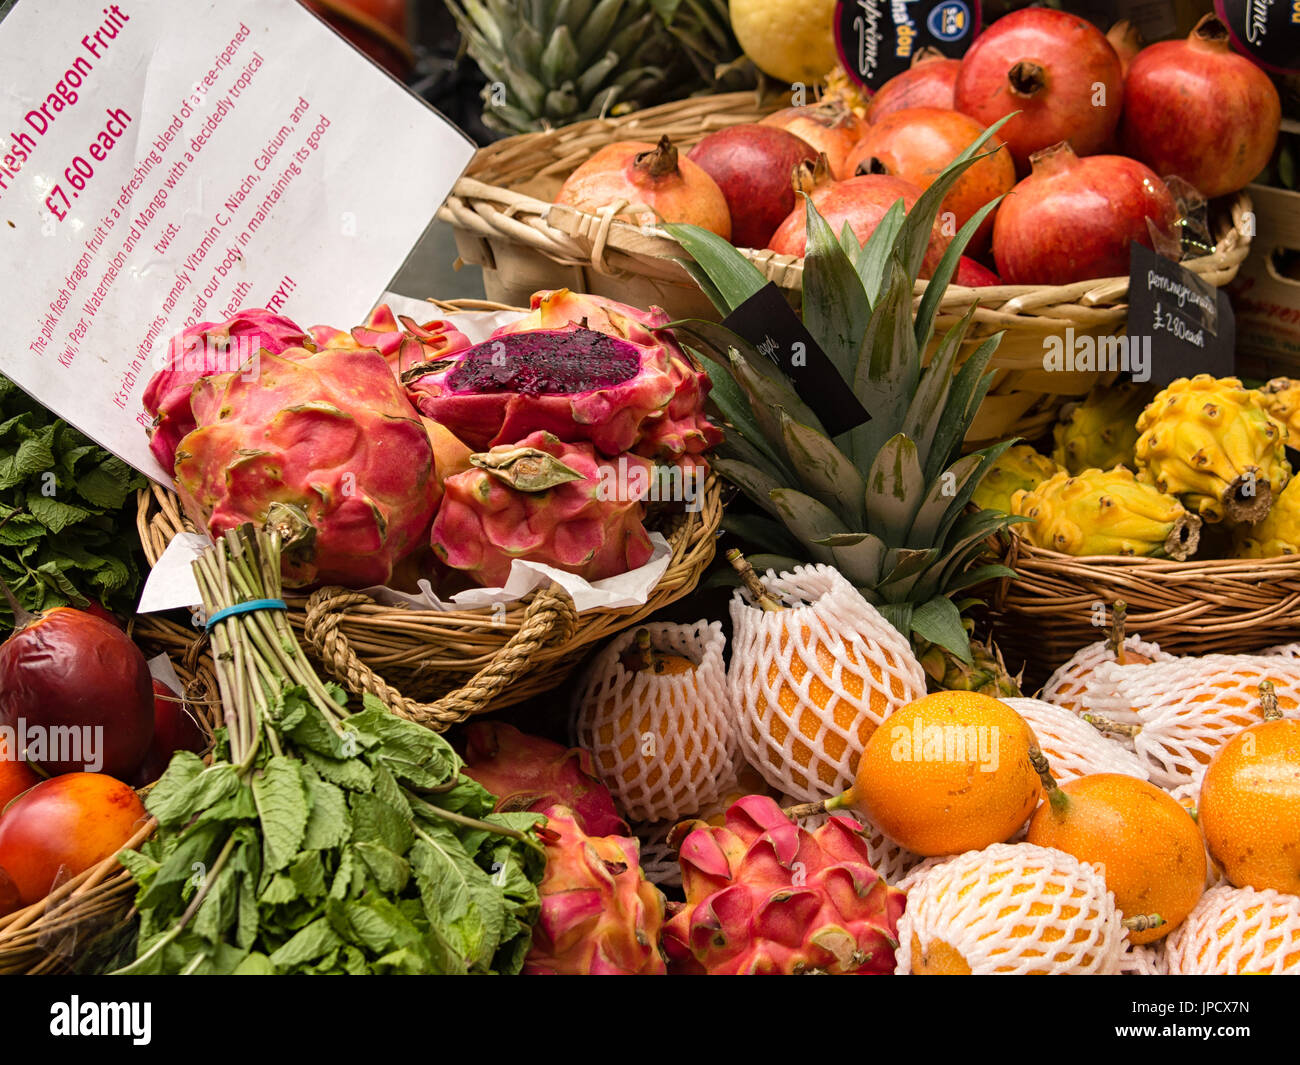 Green Grocers Stock Photos & Green Grocers Stock Images - Alamy